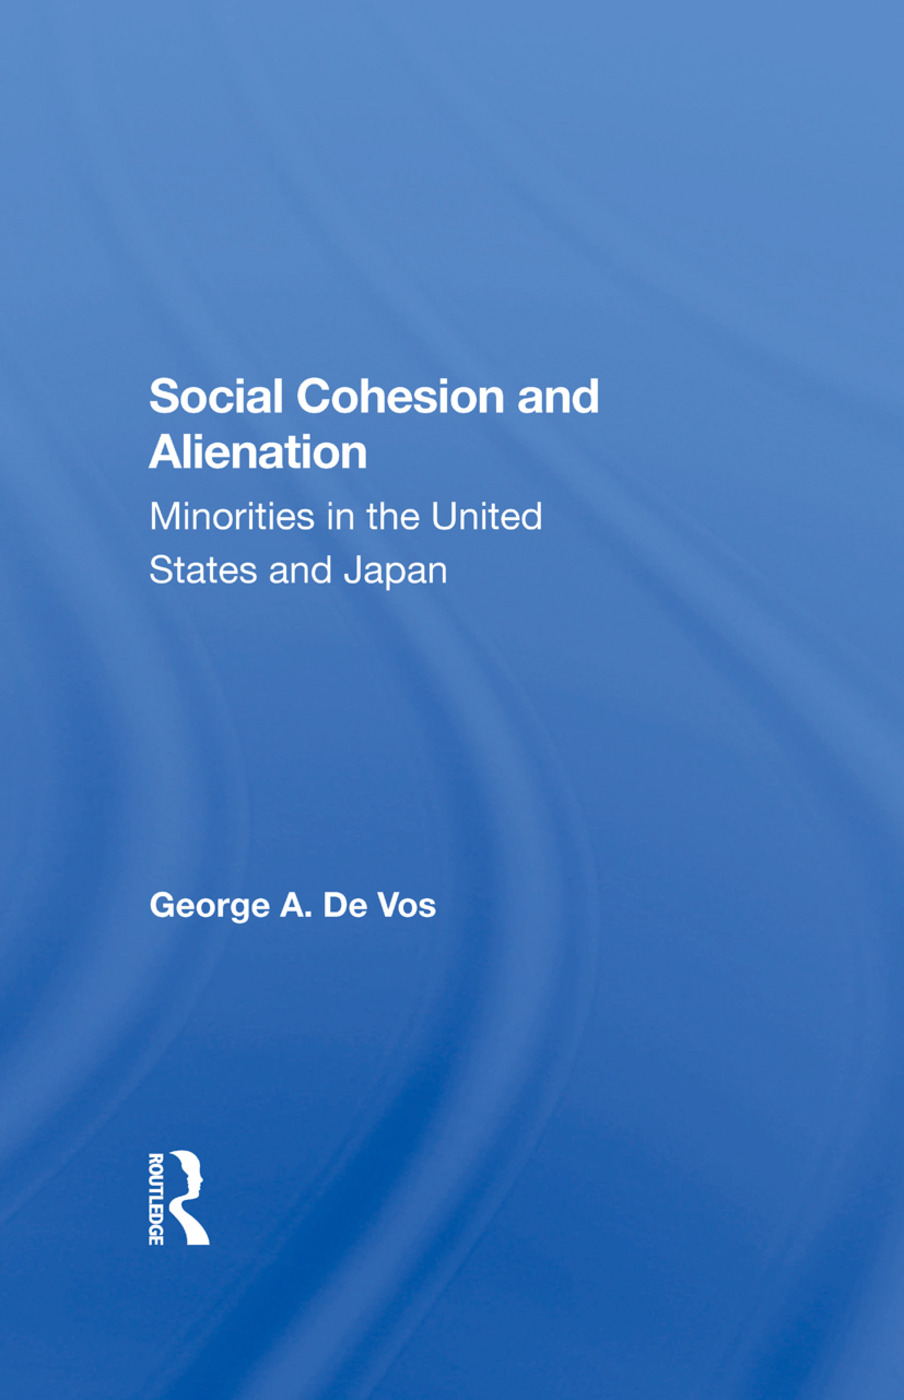 Social Cohesion And Alienation: Minorities In The United States And Japan, 1st Edition (Hardback) book cover